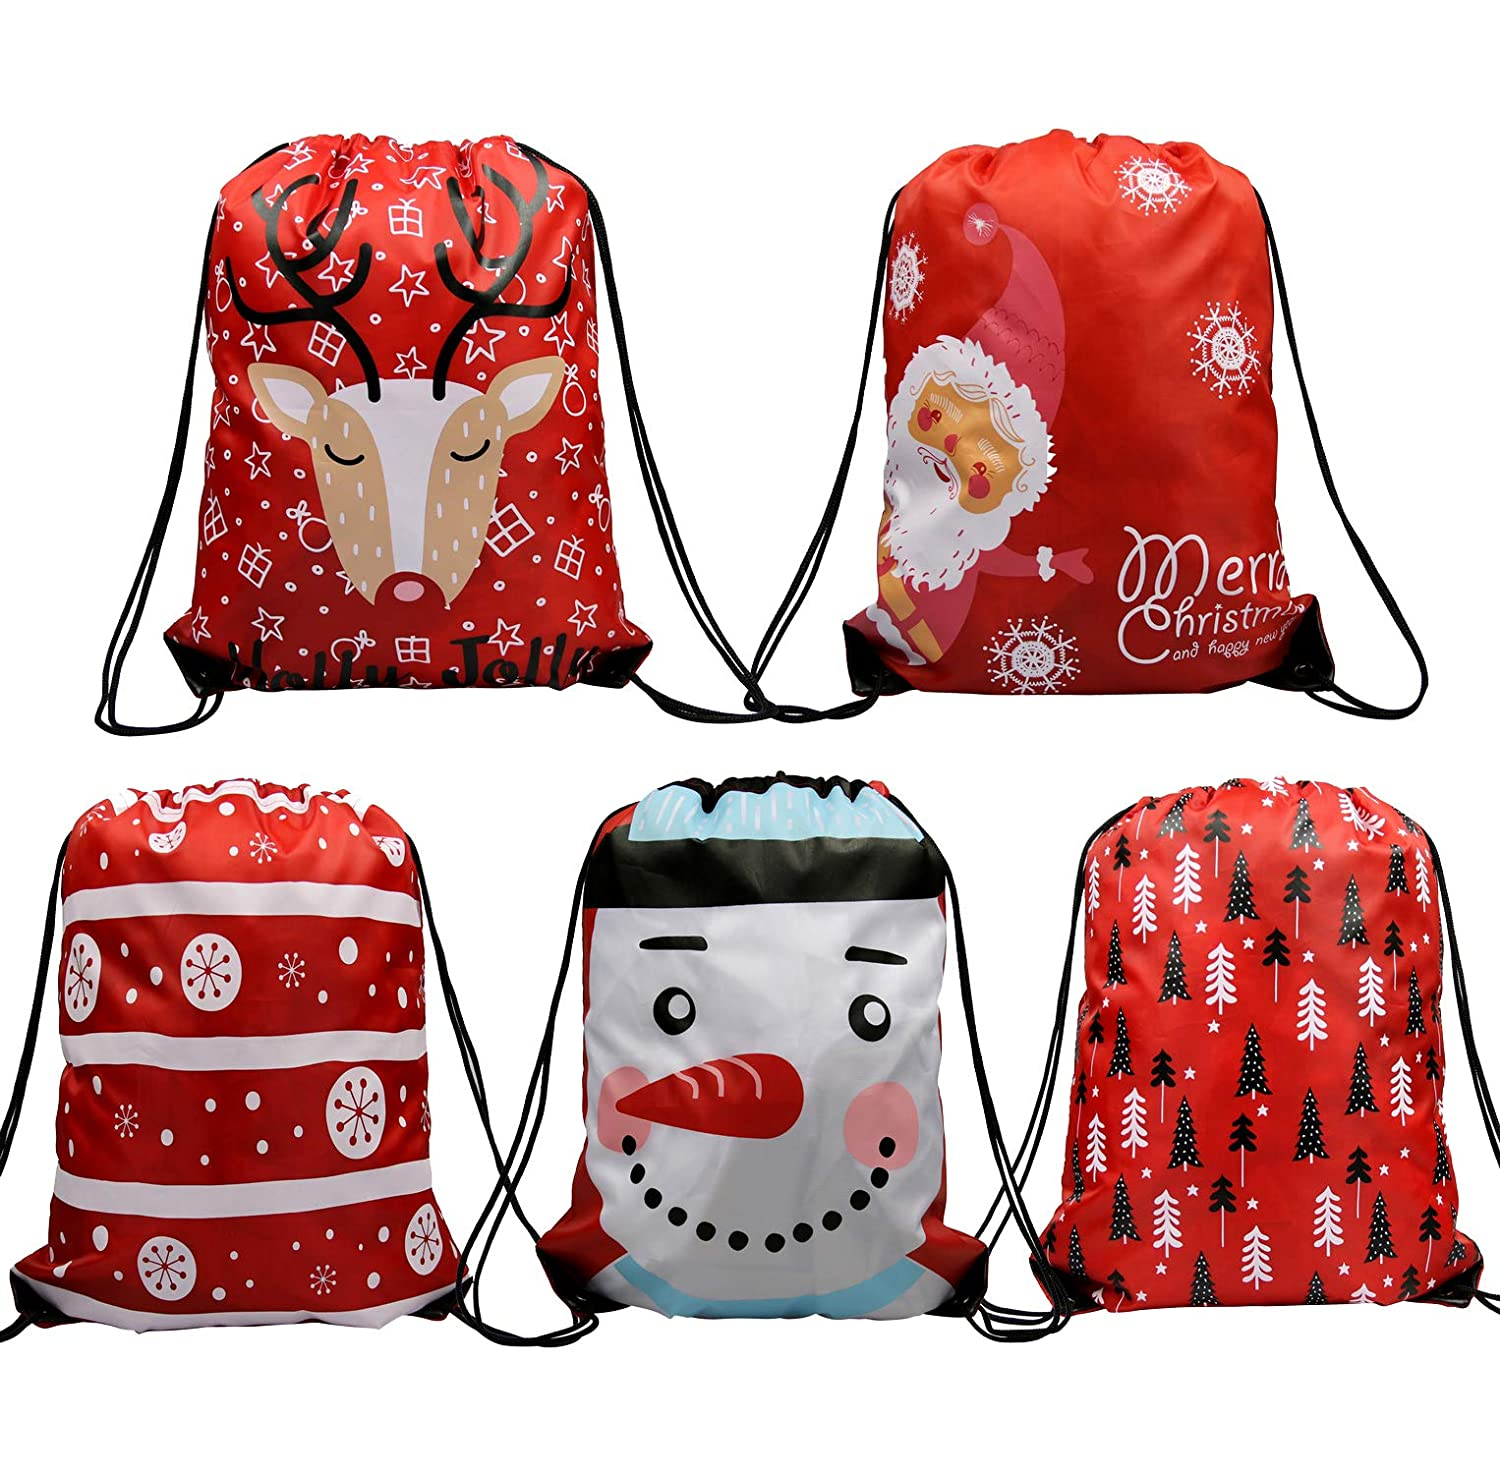 Christmas Drawstring Gifts Bags 5 Pack, Santa Sack Backpack for Party Favors Gifts and Candy BeeGreenBags SDS02